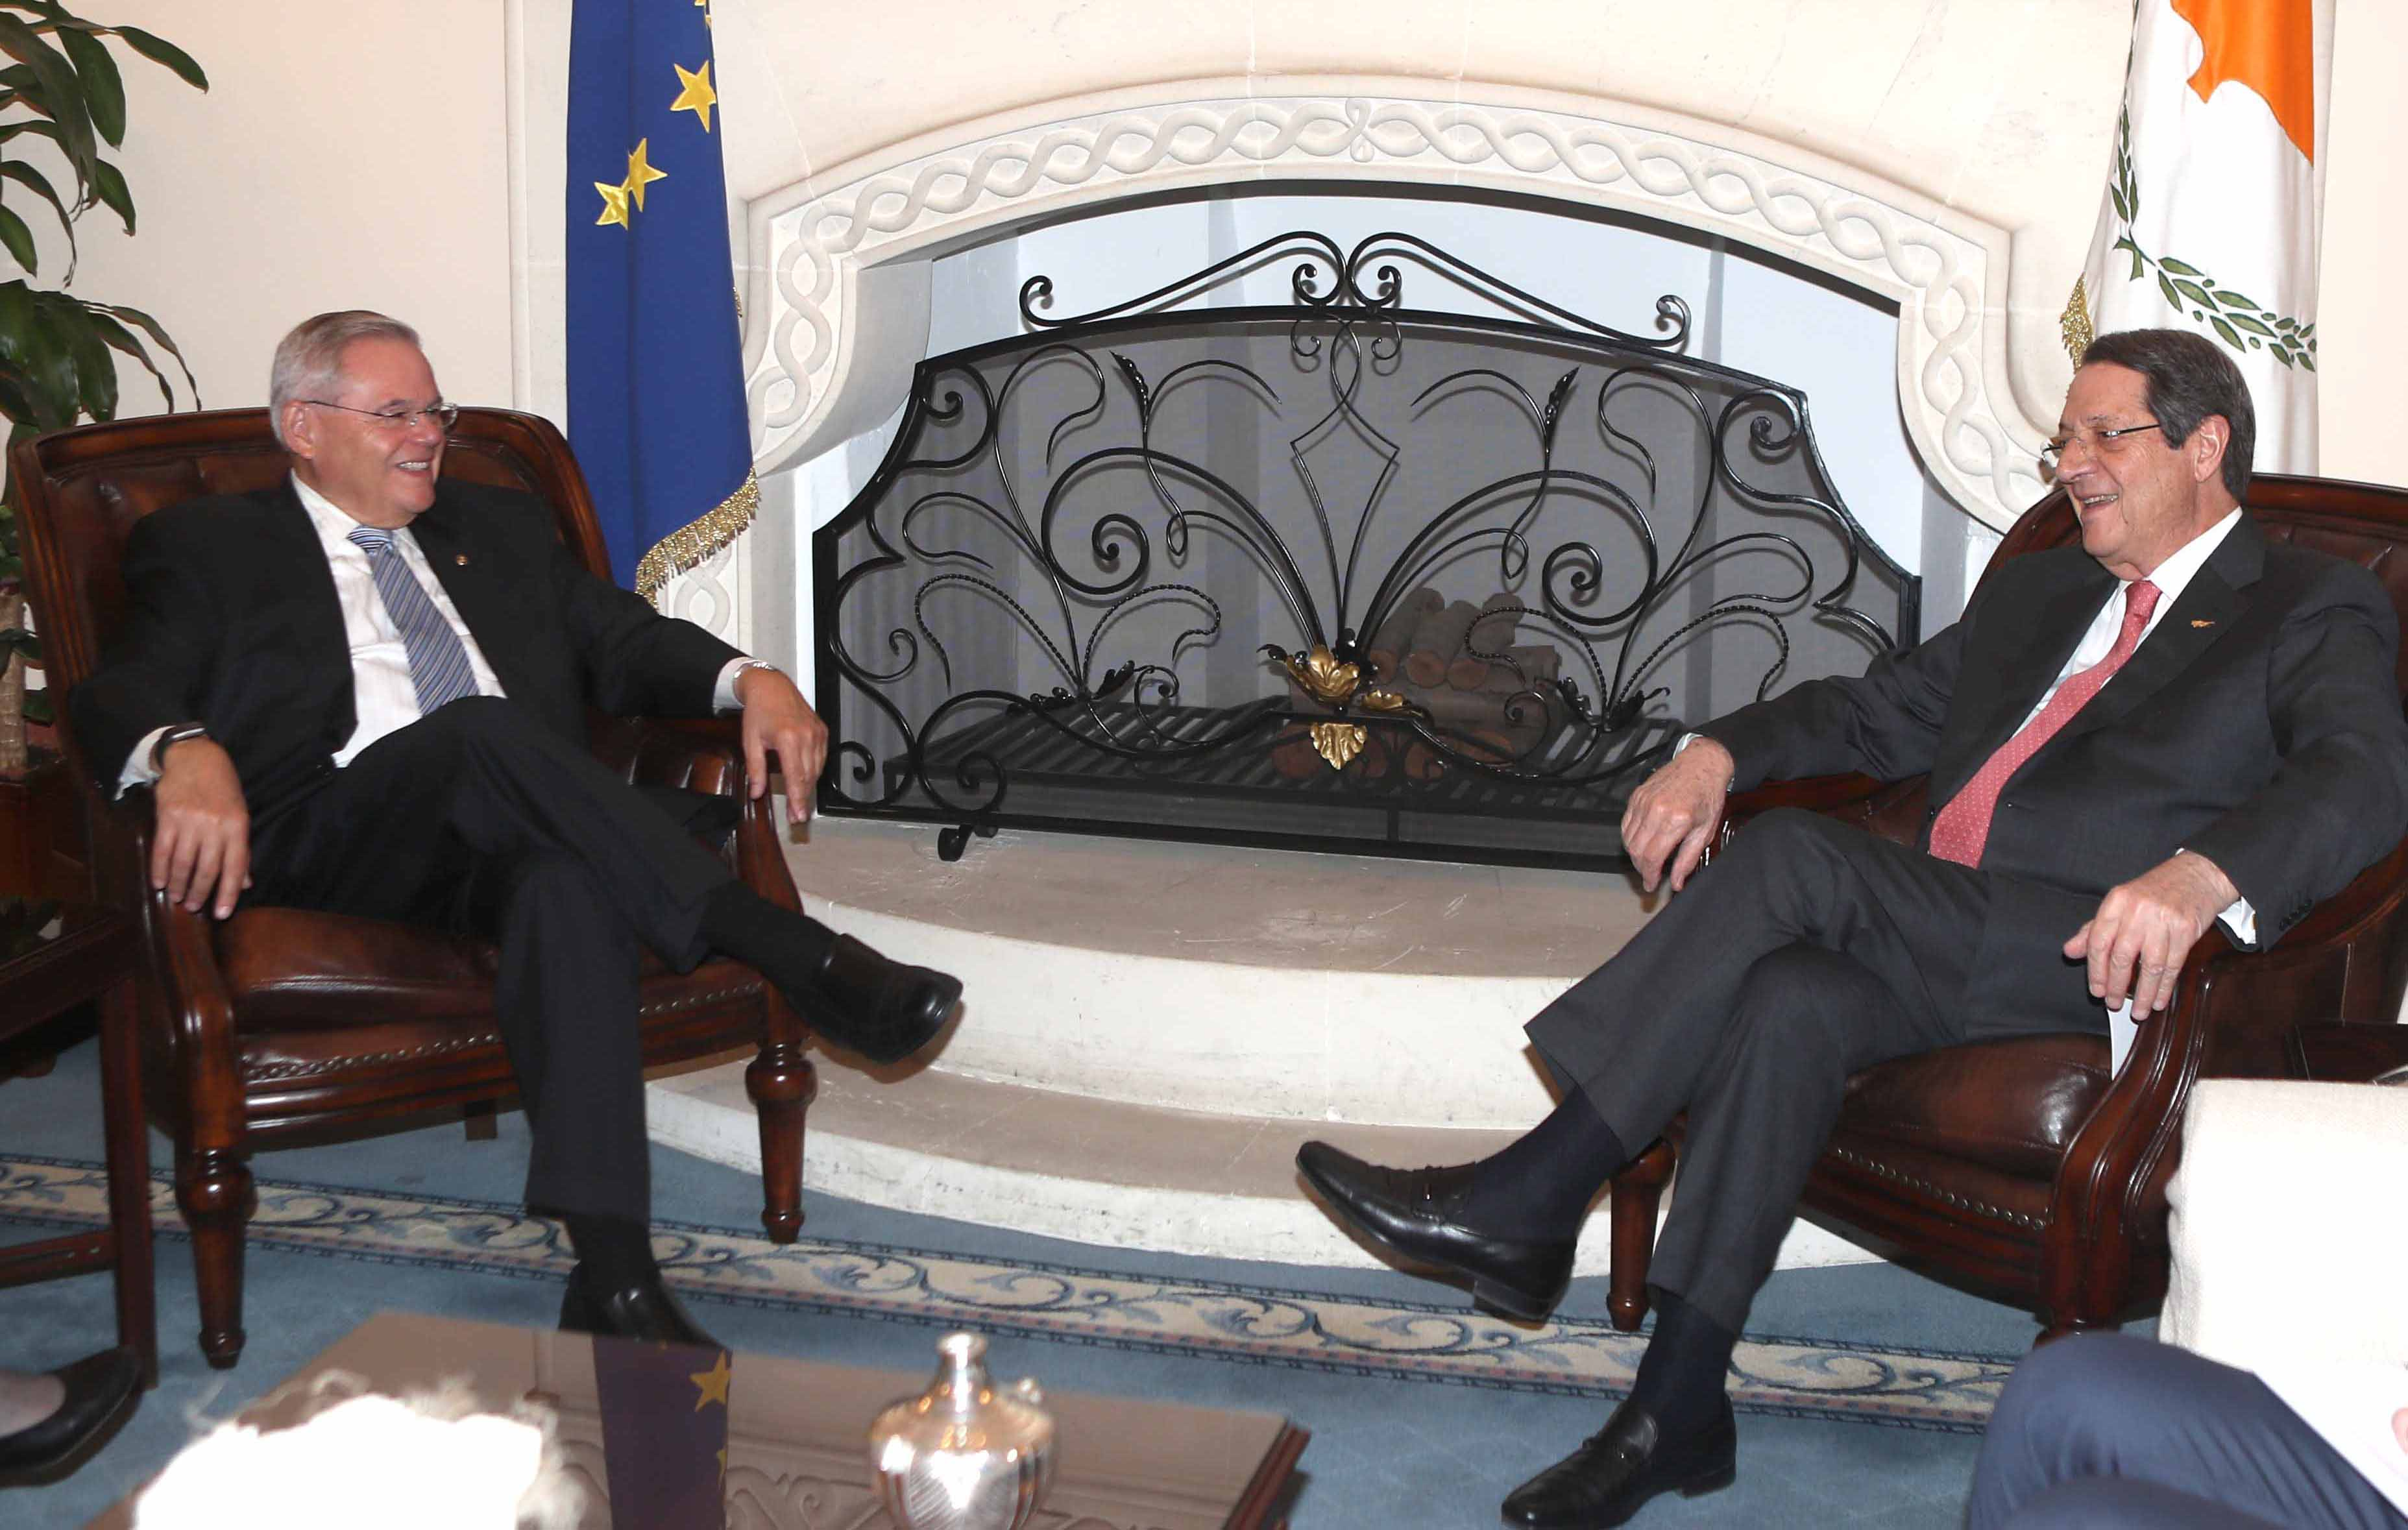 Menendez in Cyprus: He met with Anastasiades putting the embargo on the table